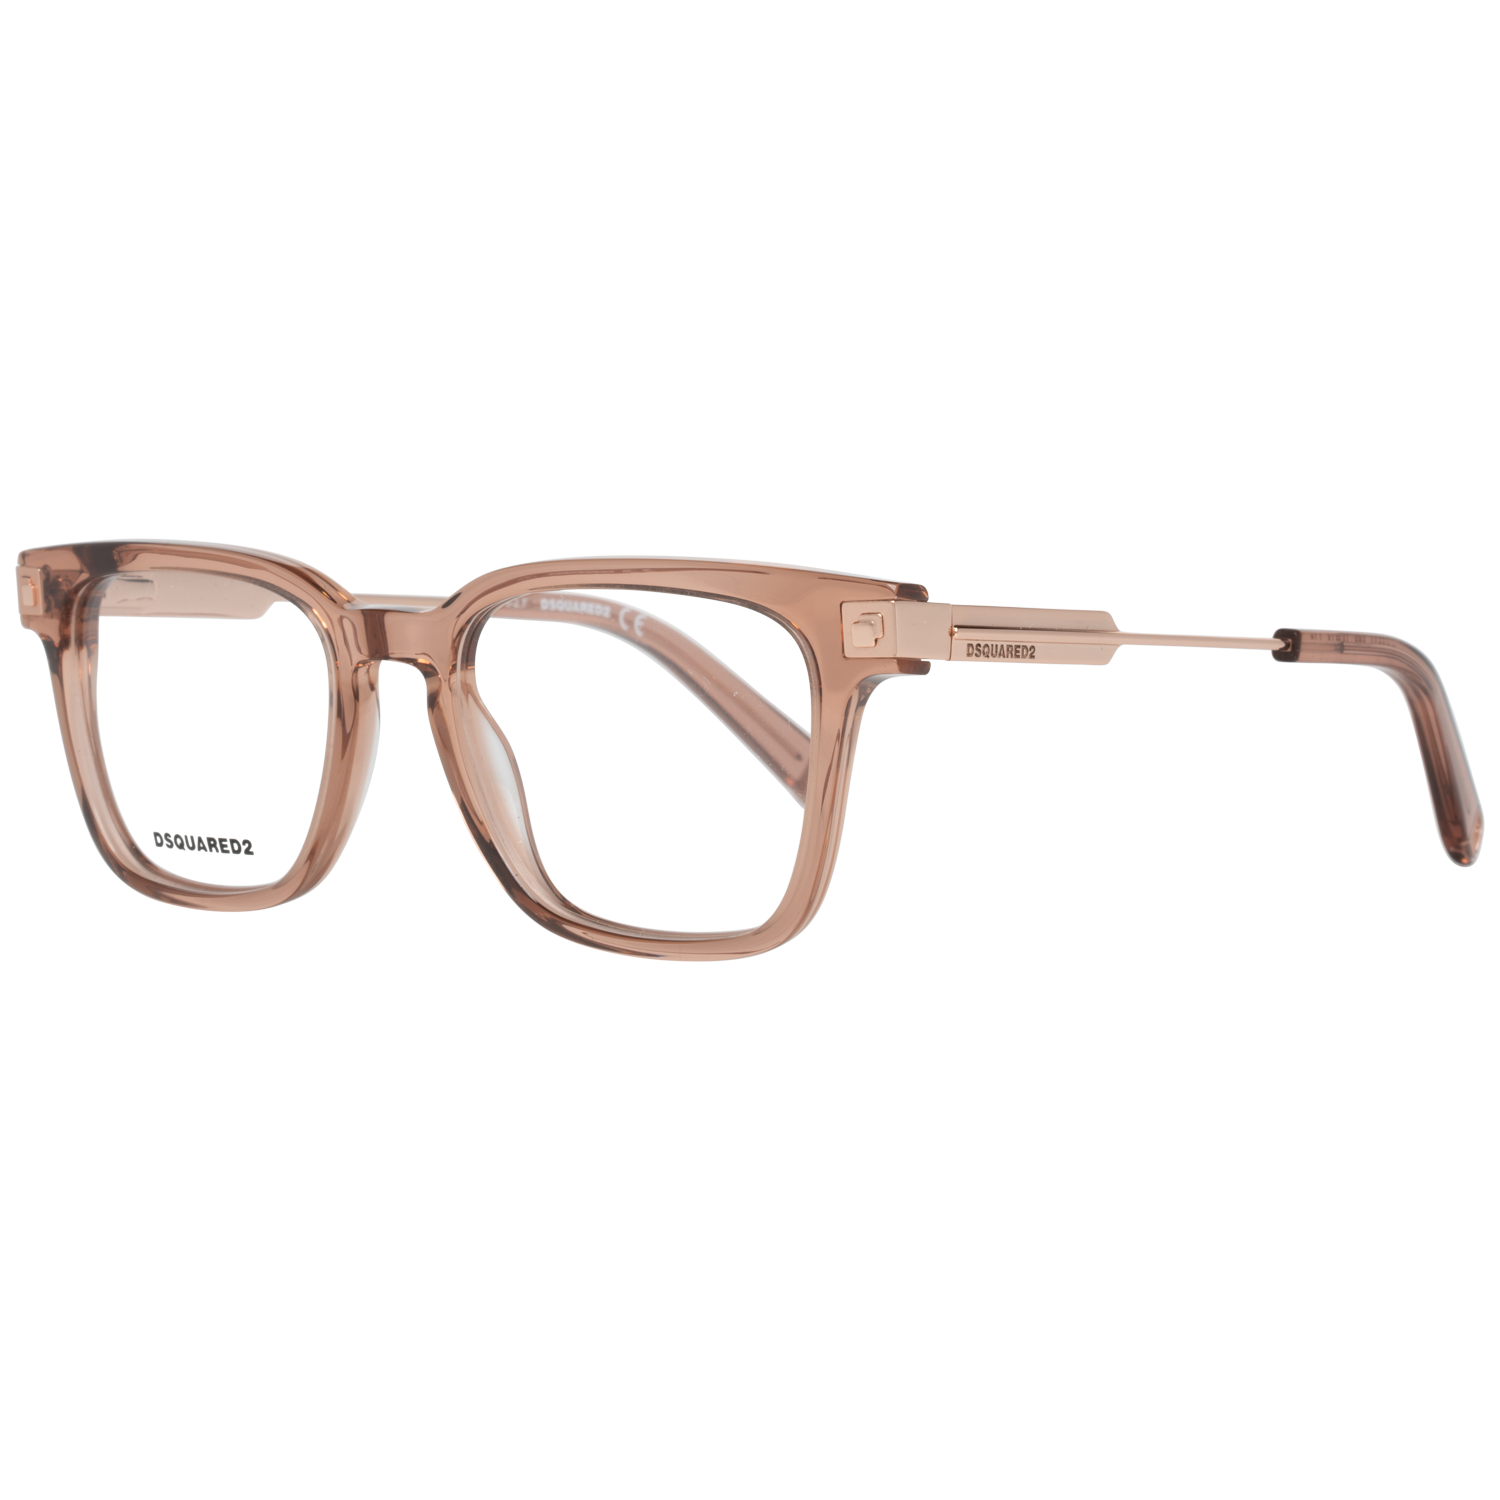 Dsquared2 Optical Frame DQ5244 072 49 Pink